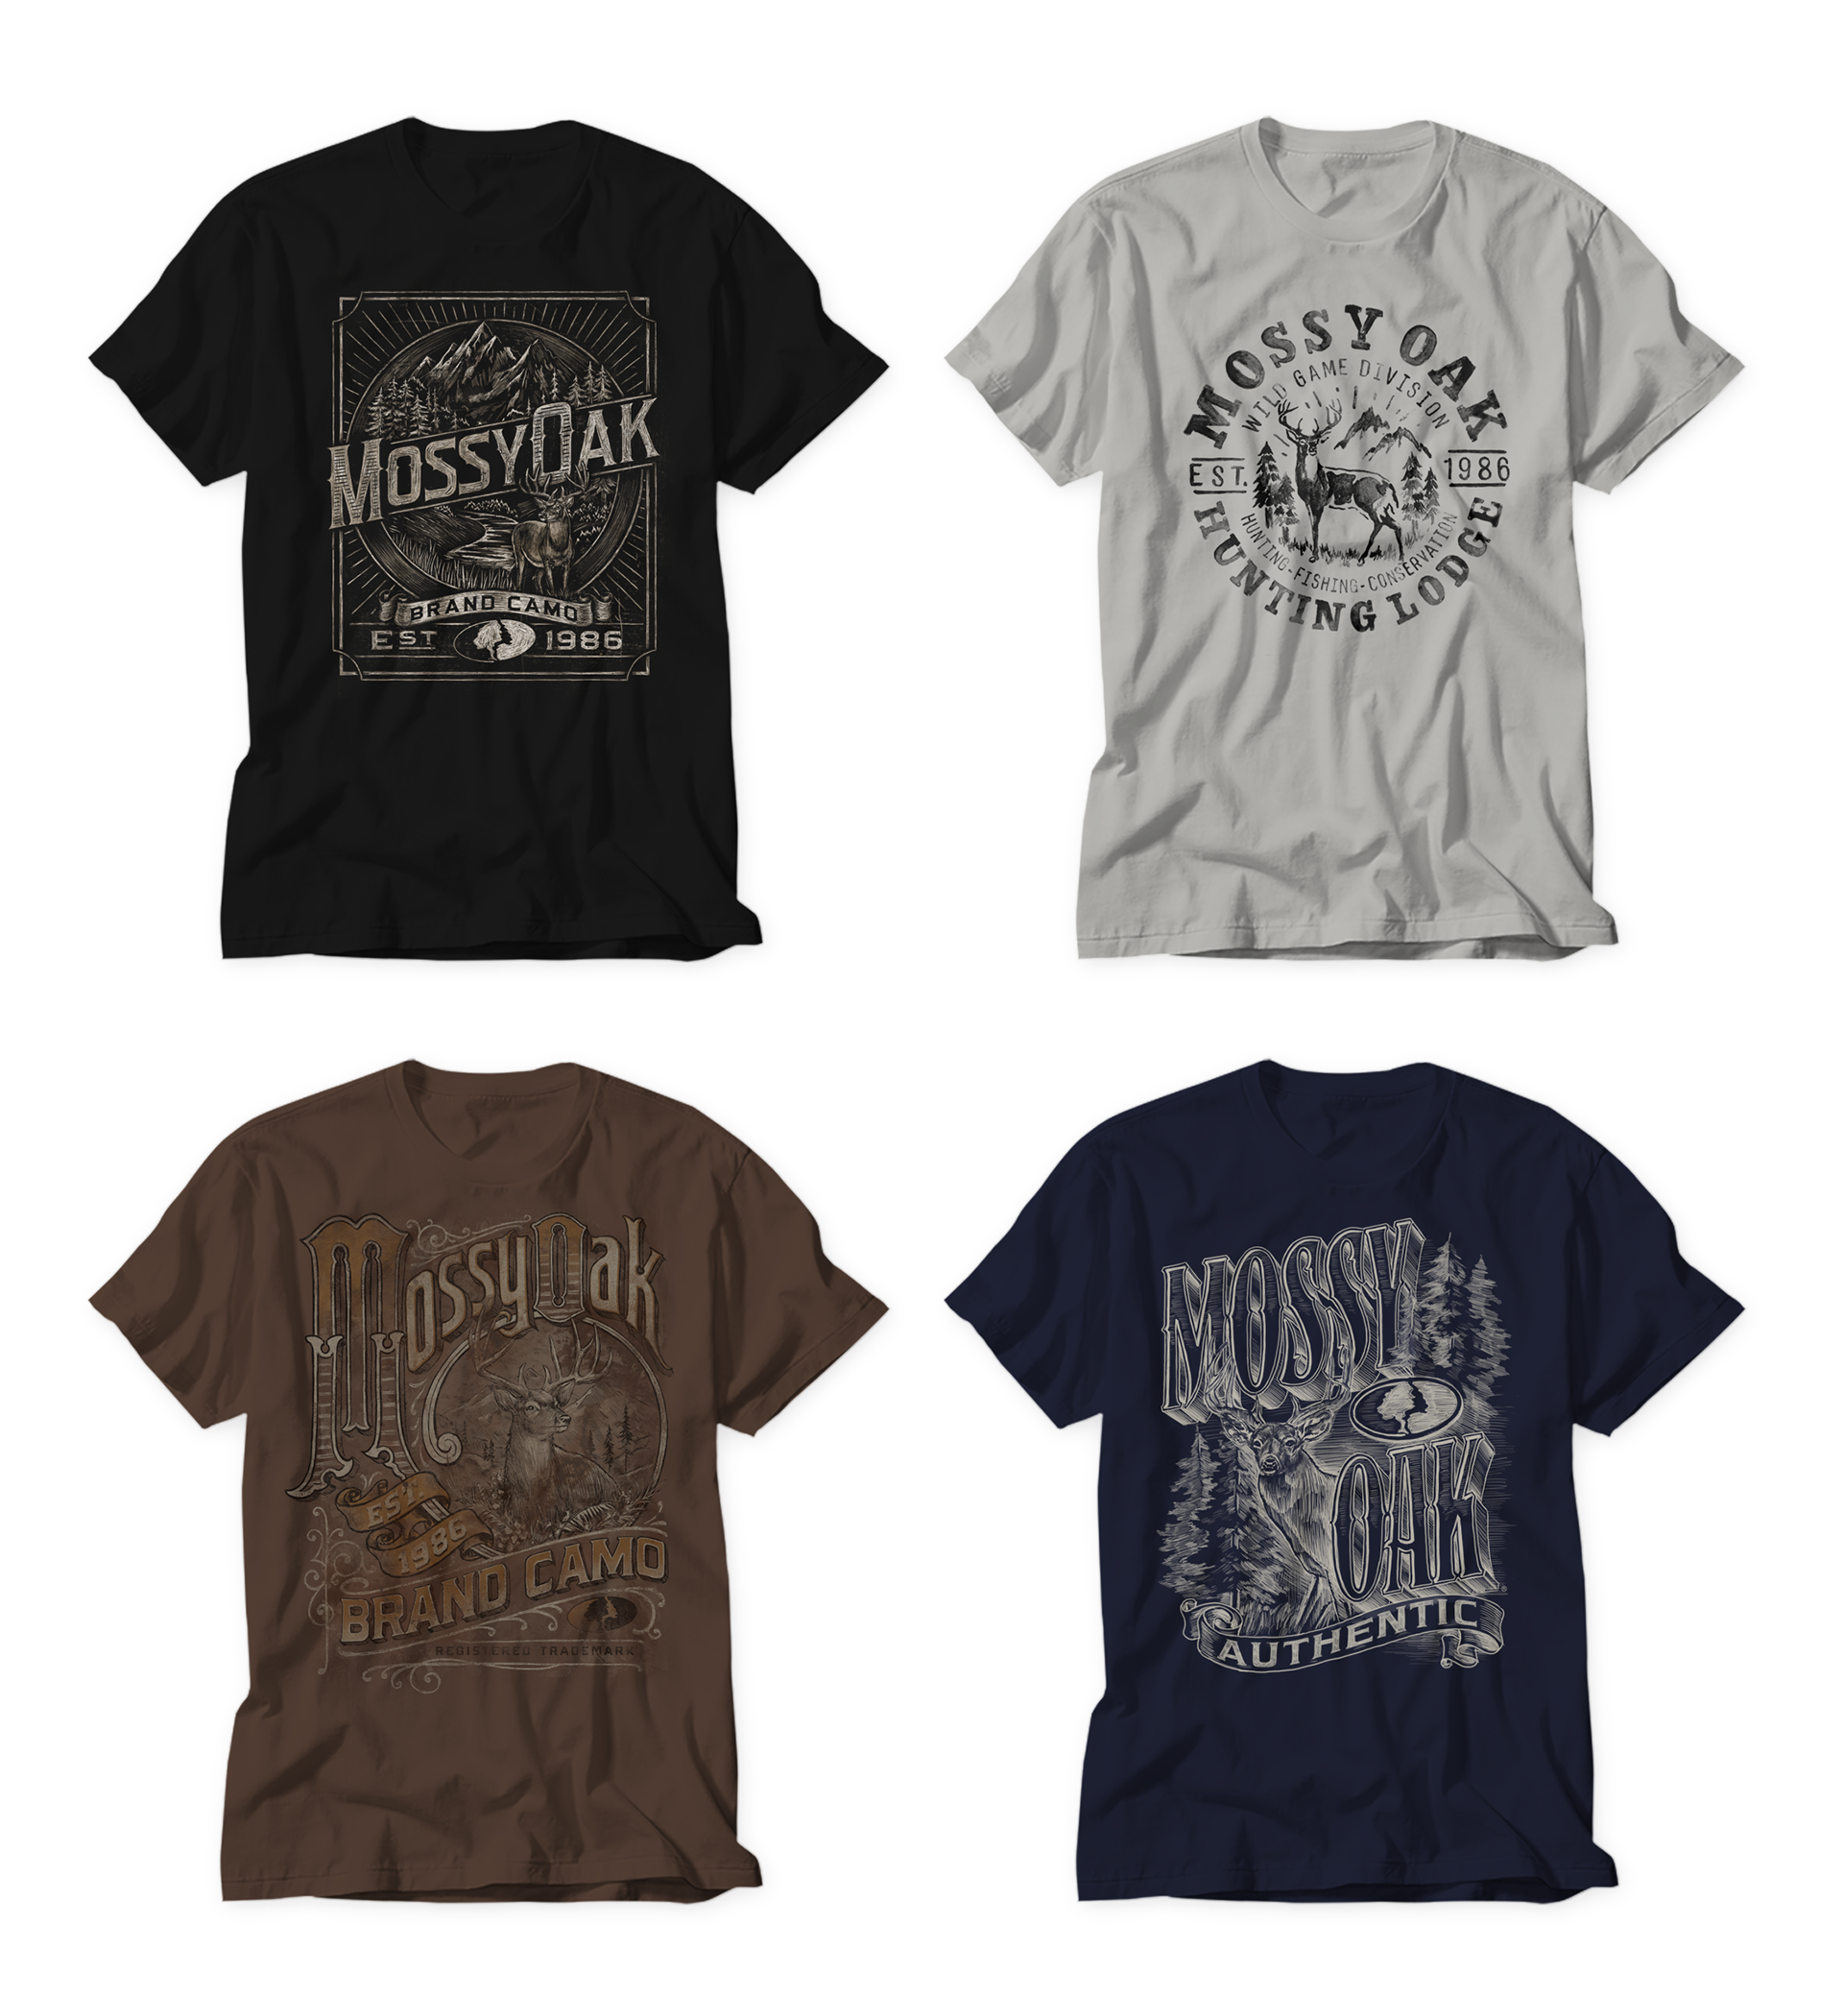 Michael Hinkle Graphic Design And Illustration Mossy Oak T Shirt